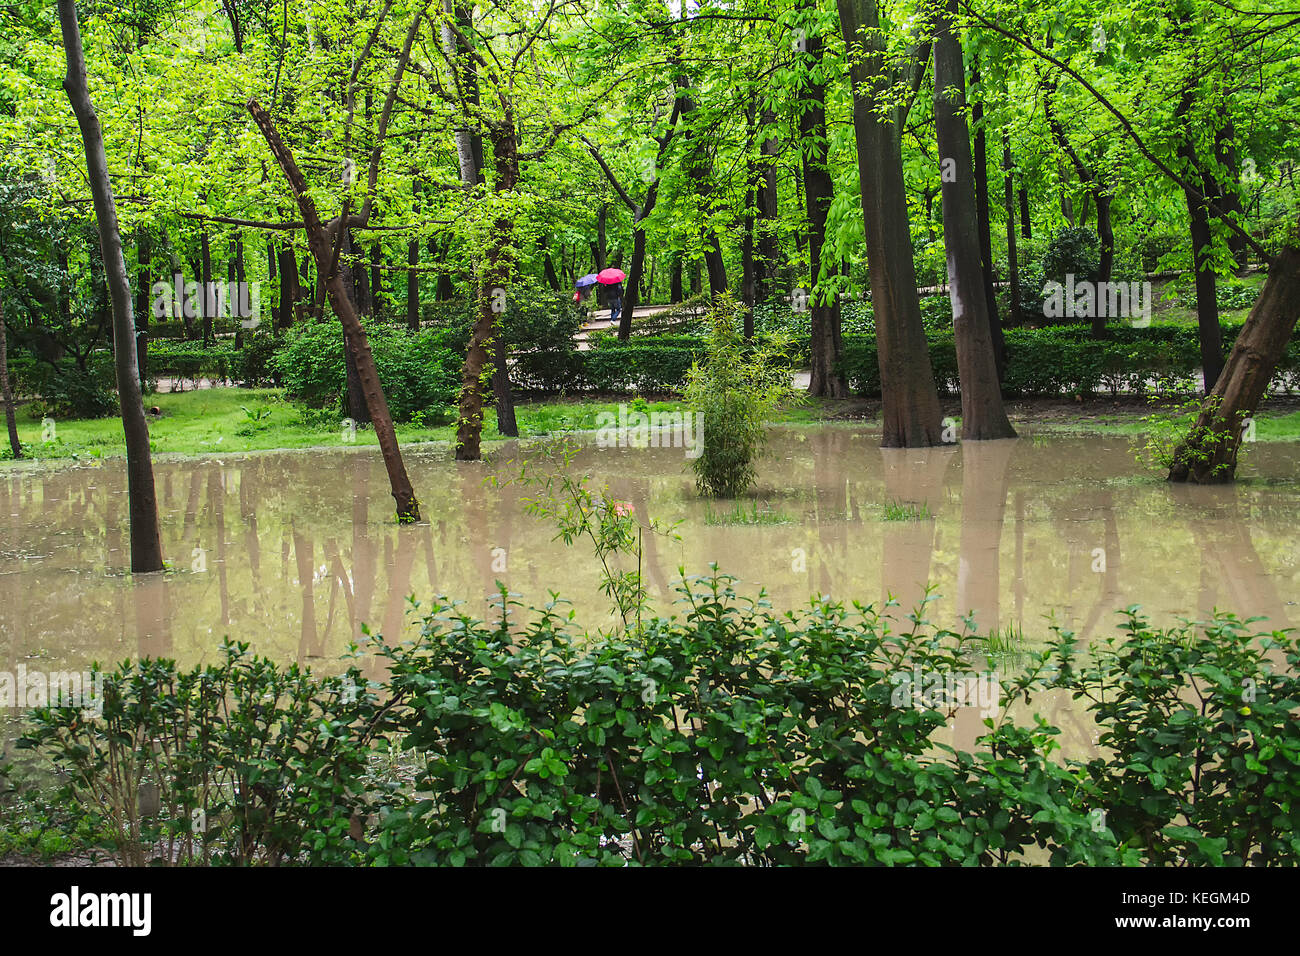 Park flooded by the rain with reflections on the puddles - Stock Image